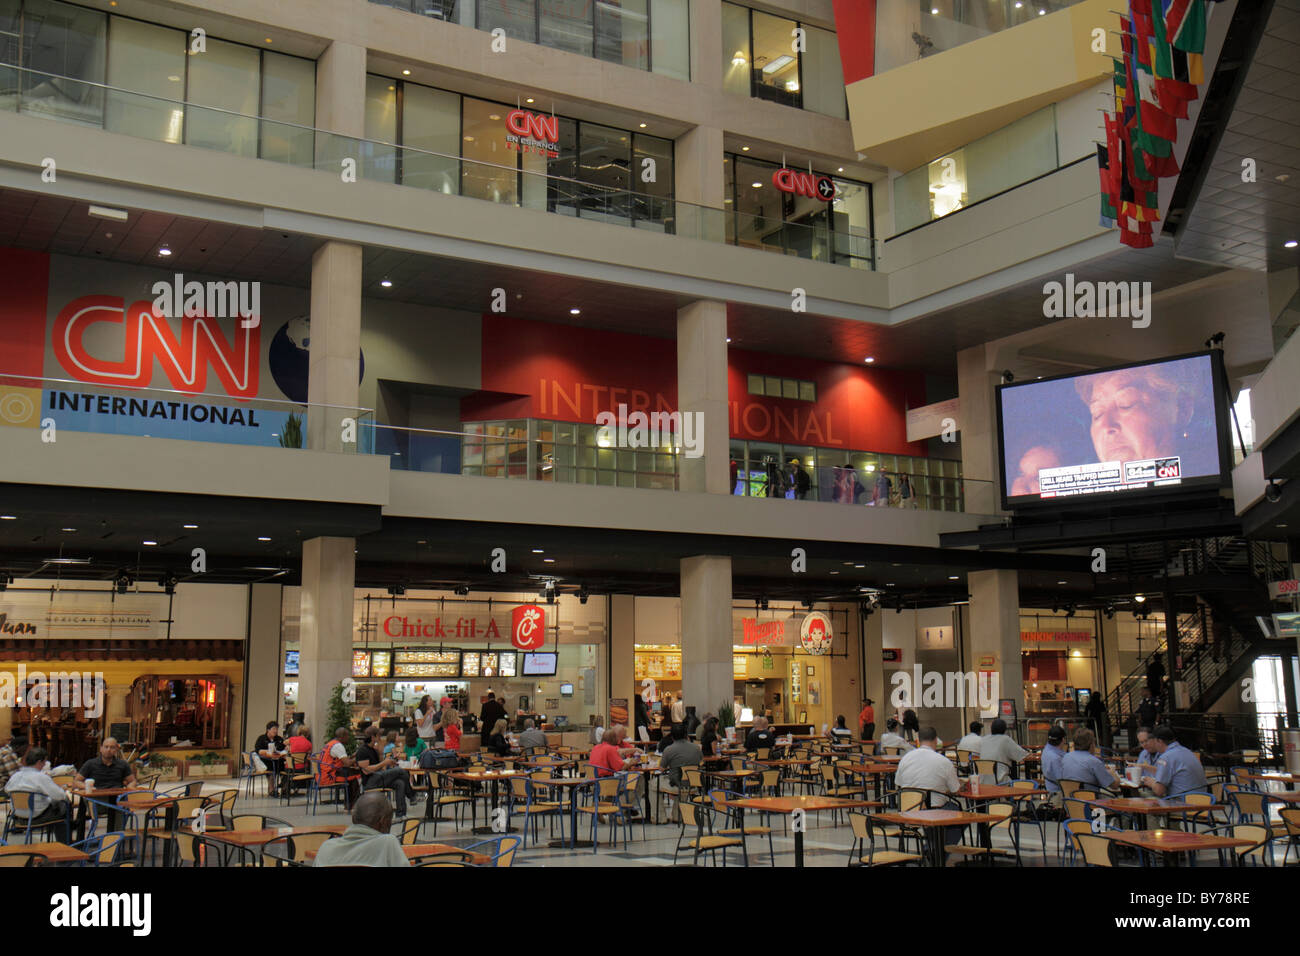 The Cnn Center Food Court